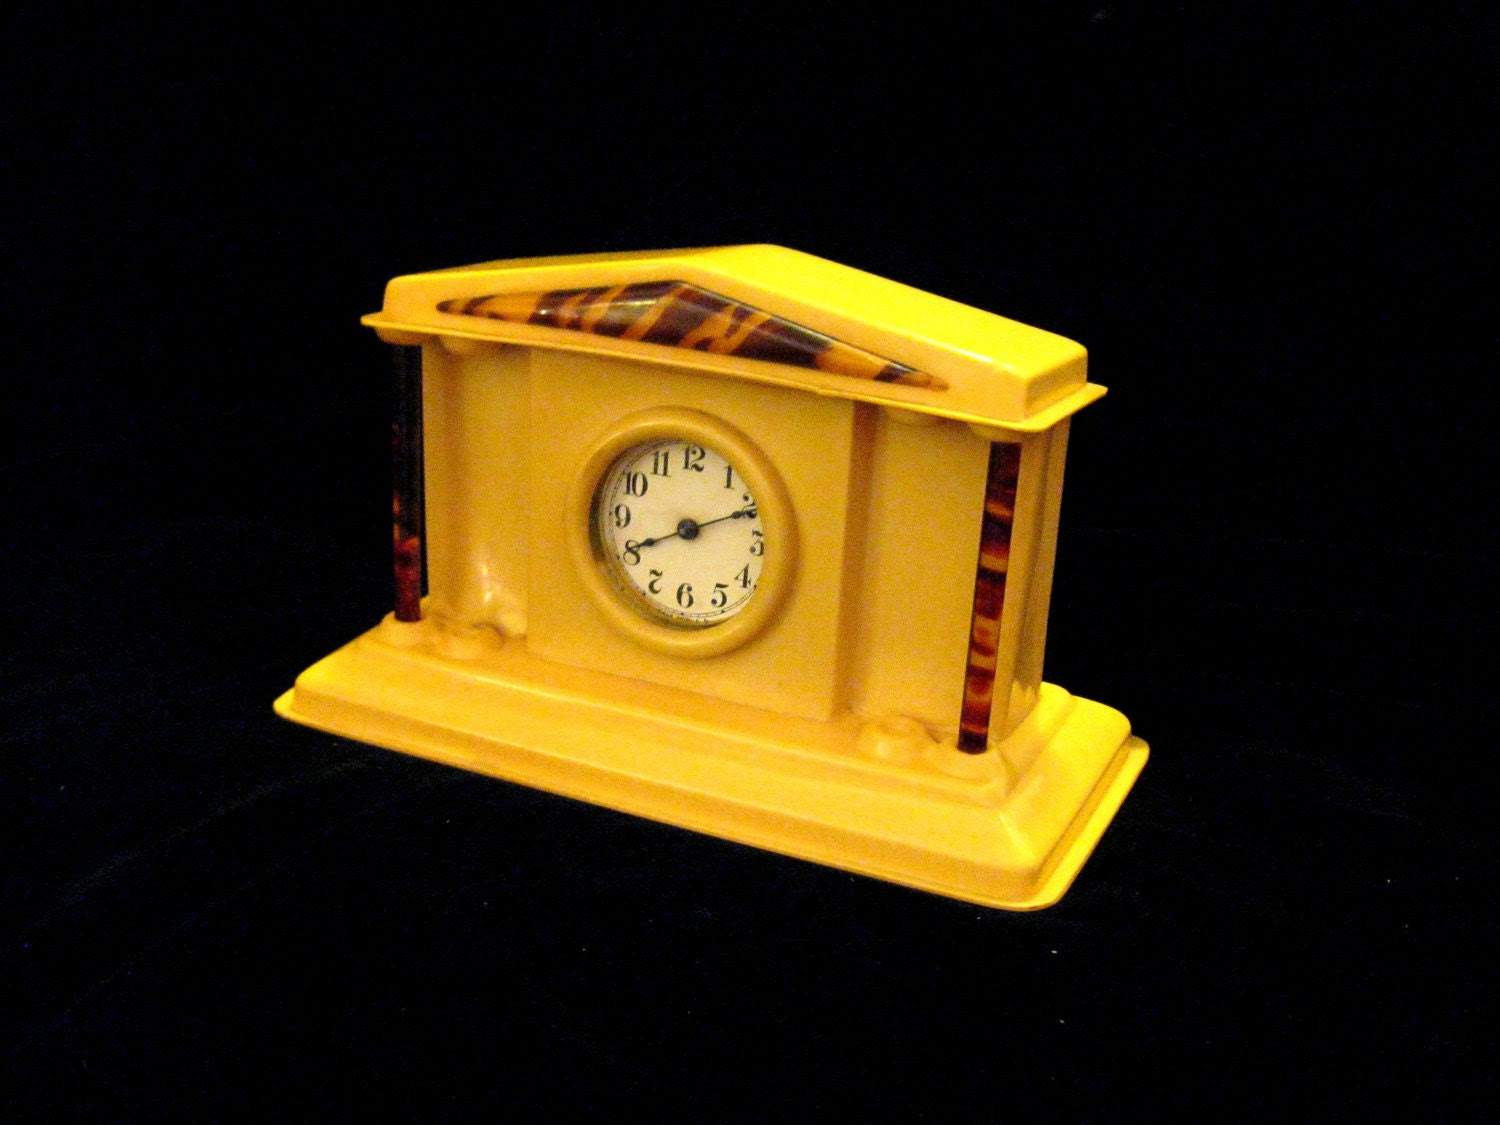 plastic clock on etsy wierclock.etsy.com